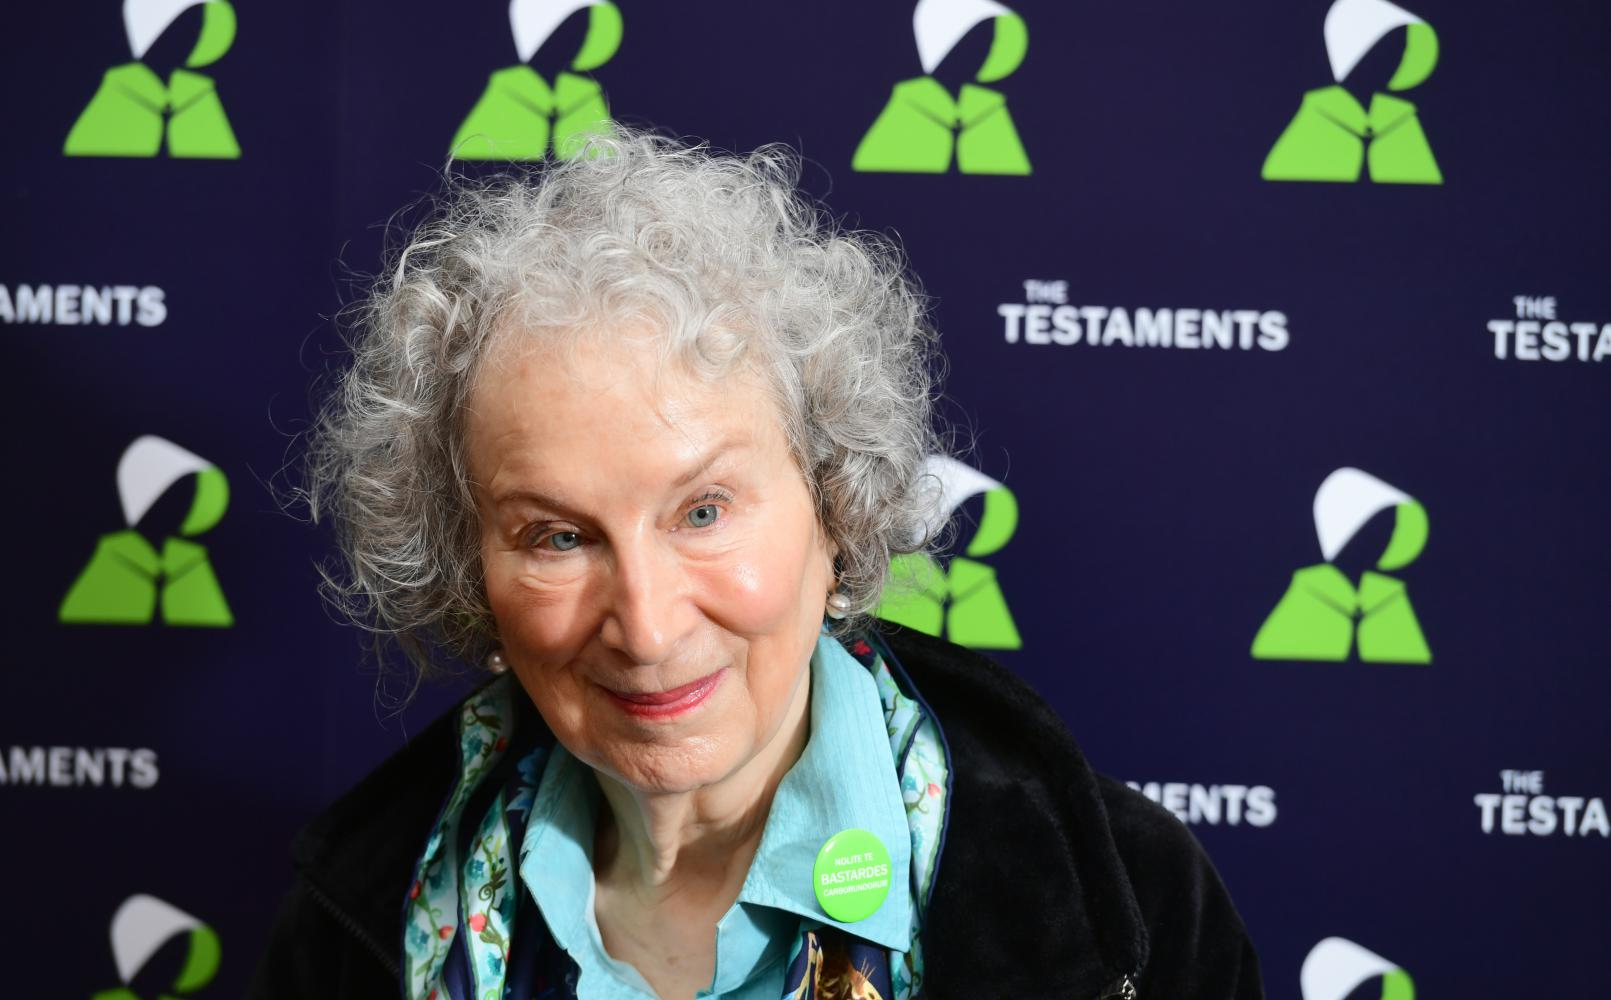 Margaret Atwood auf einer Pressekonferenz in der British Library in London